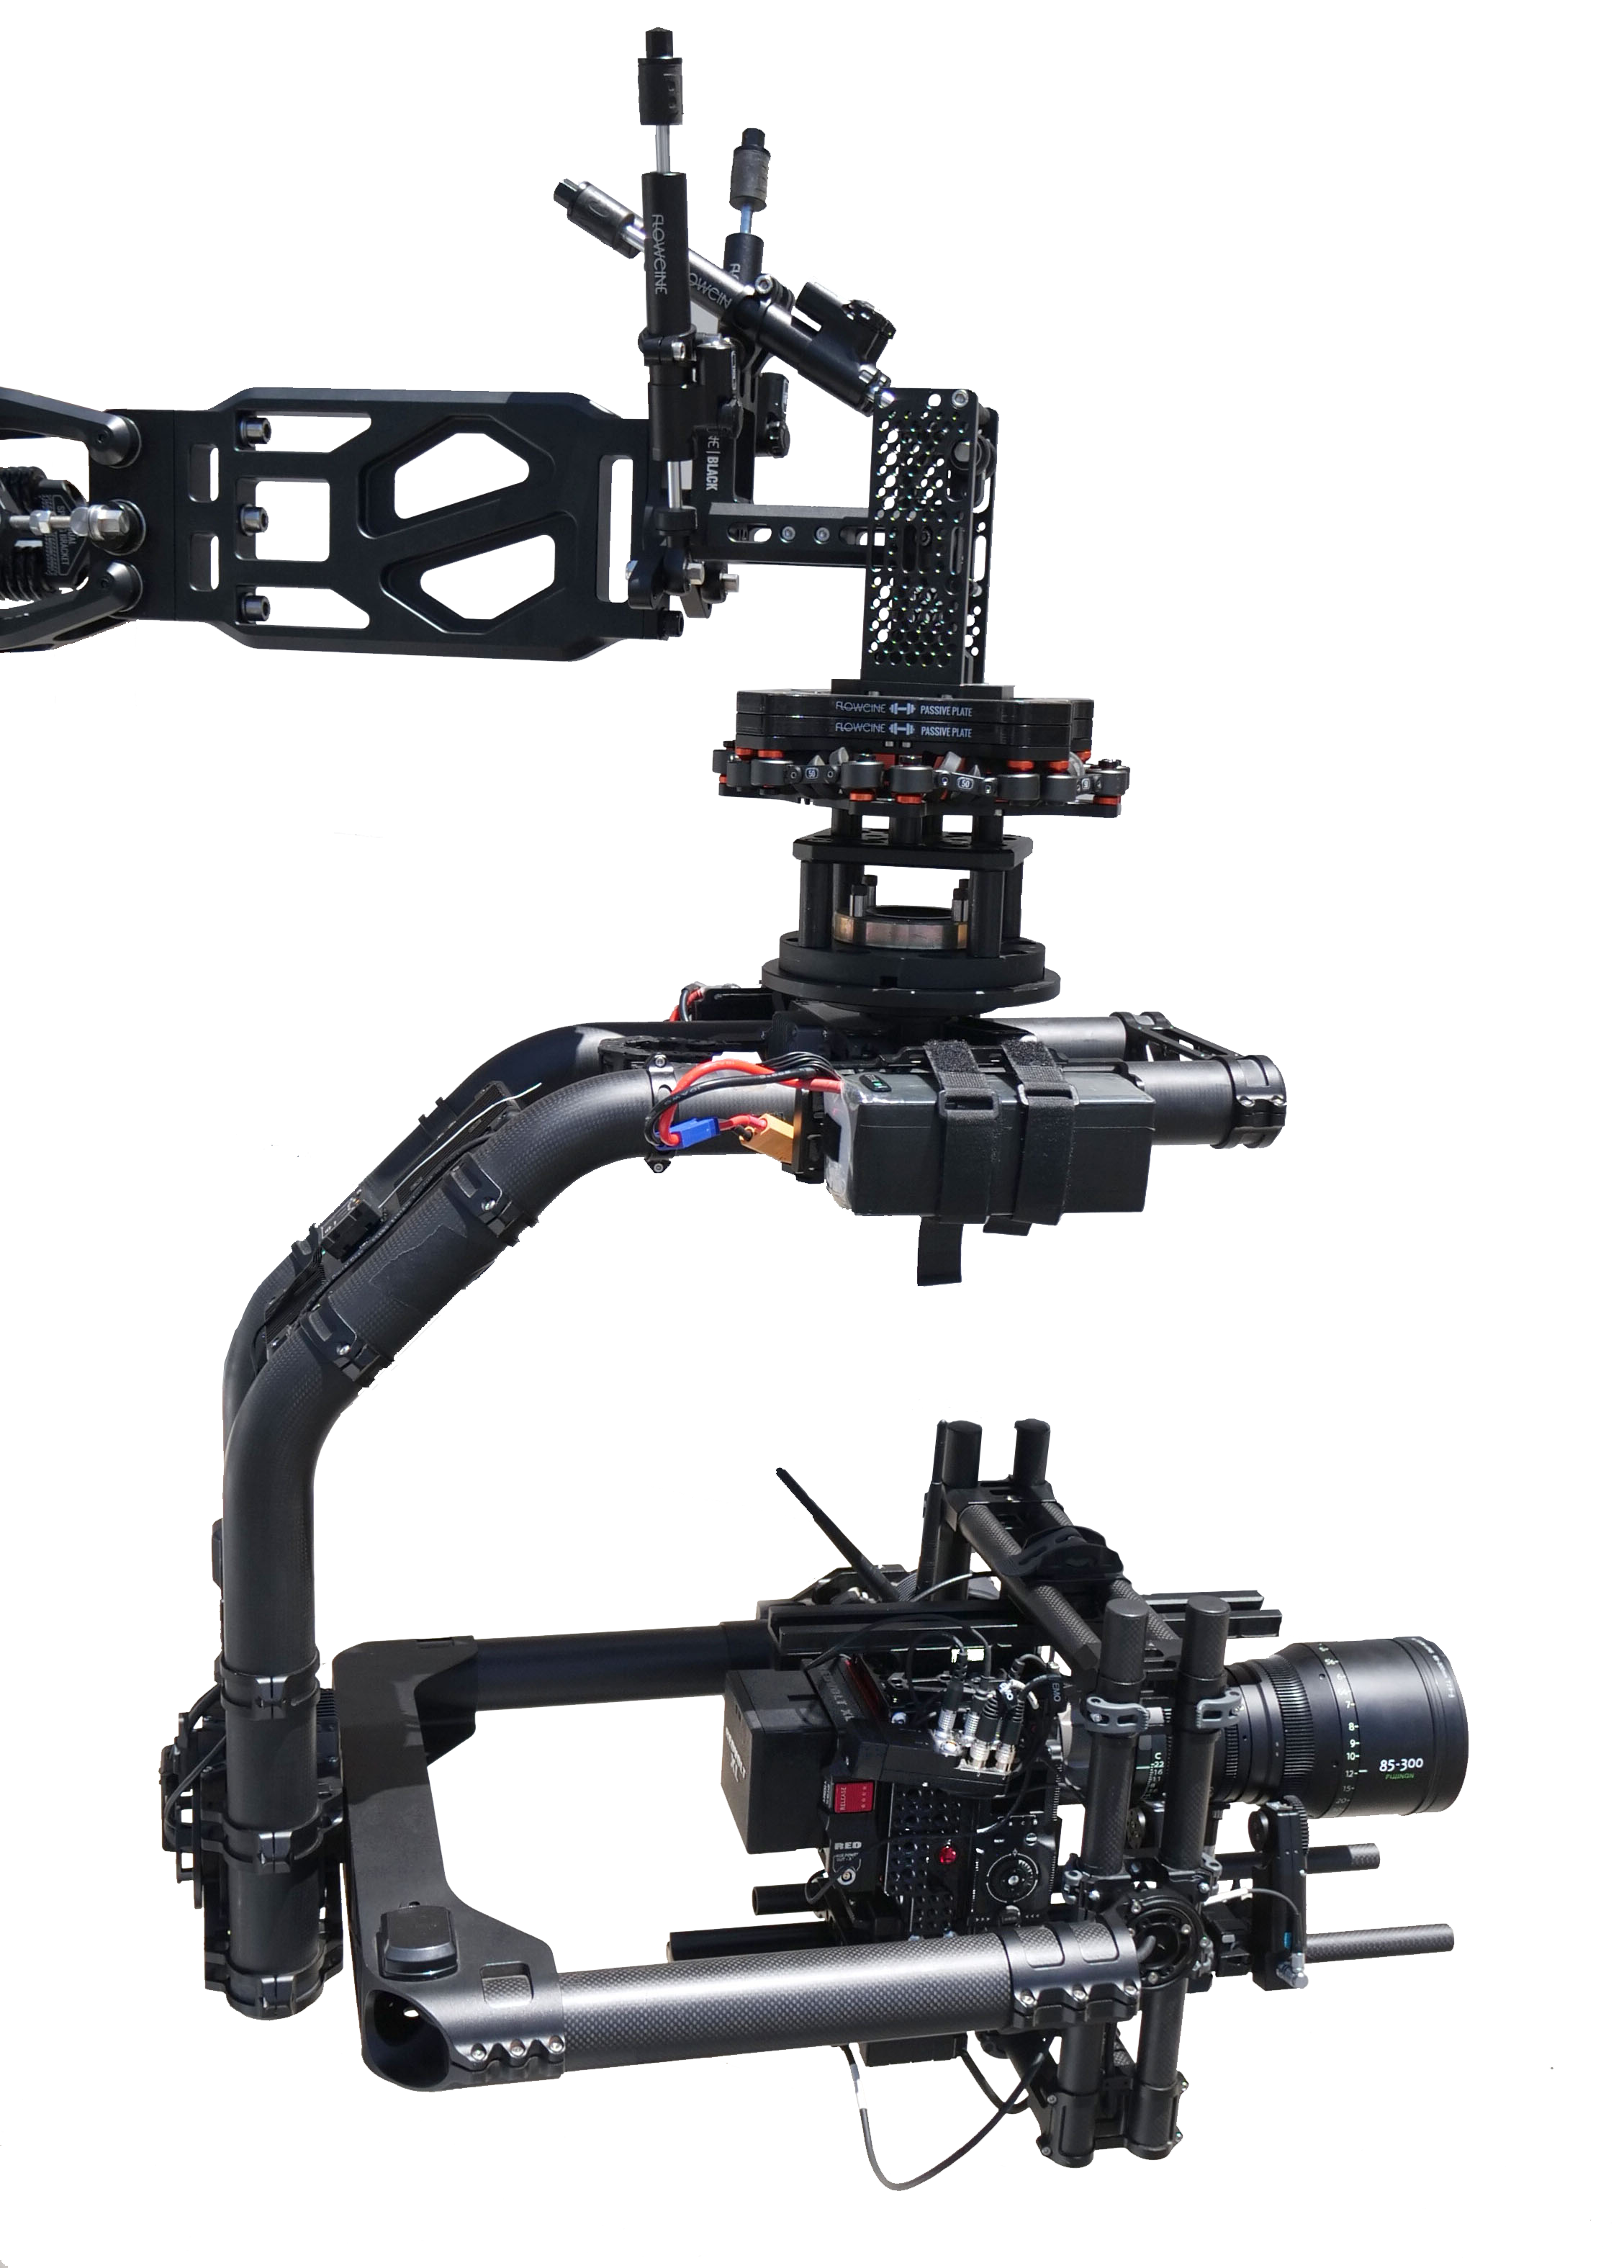 When you need power, torque and stability nothing outperforms the MoVI XL when your budget is on the line. - - eric bergez, industry sherpa